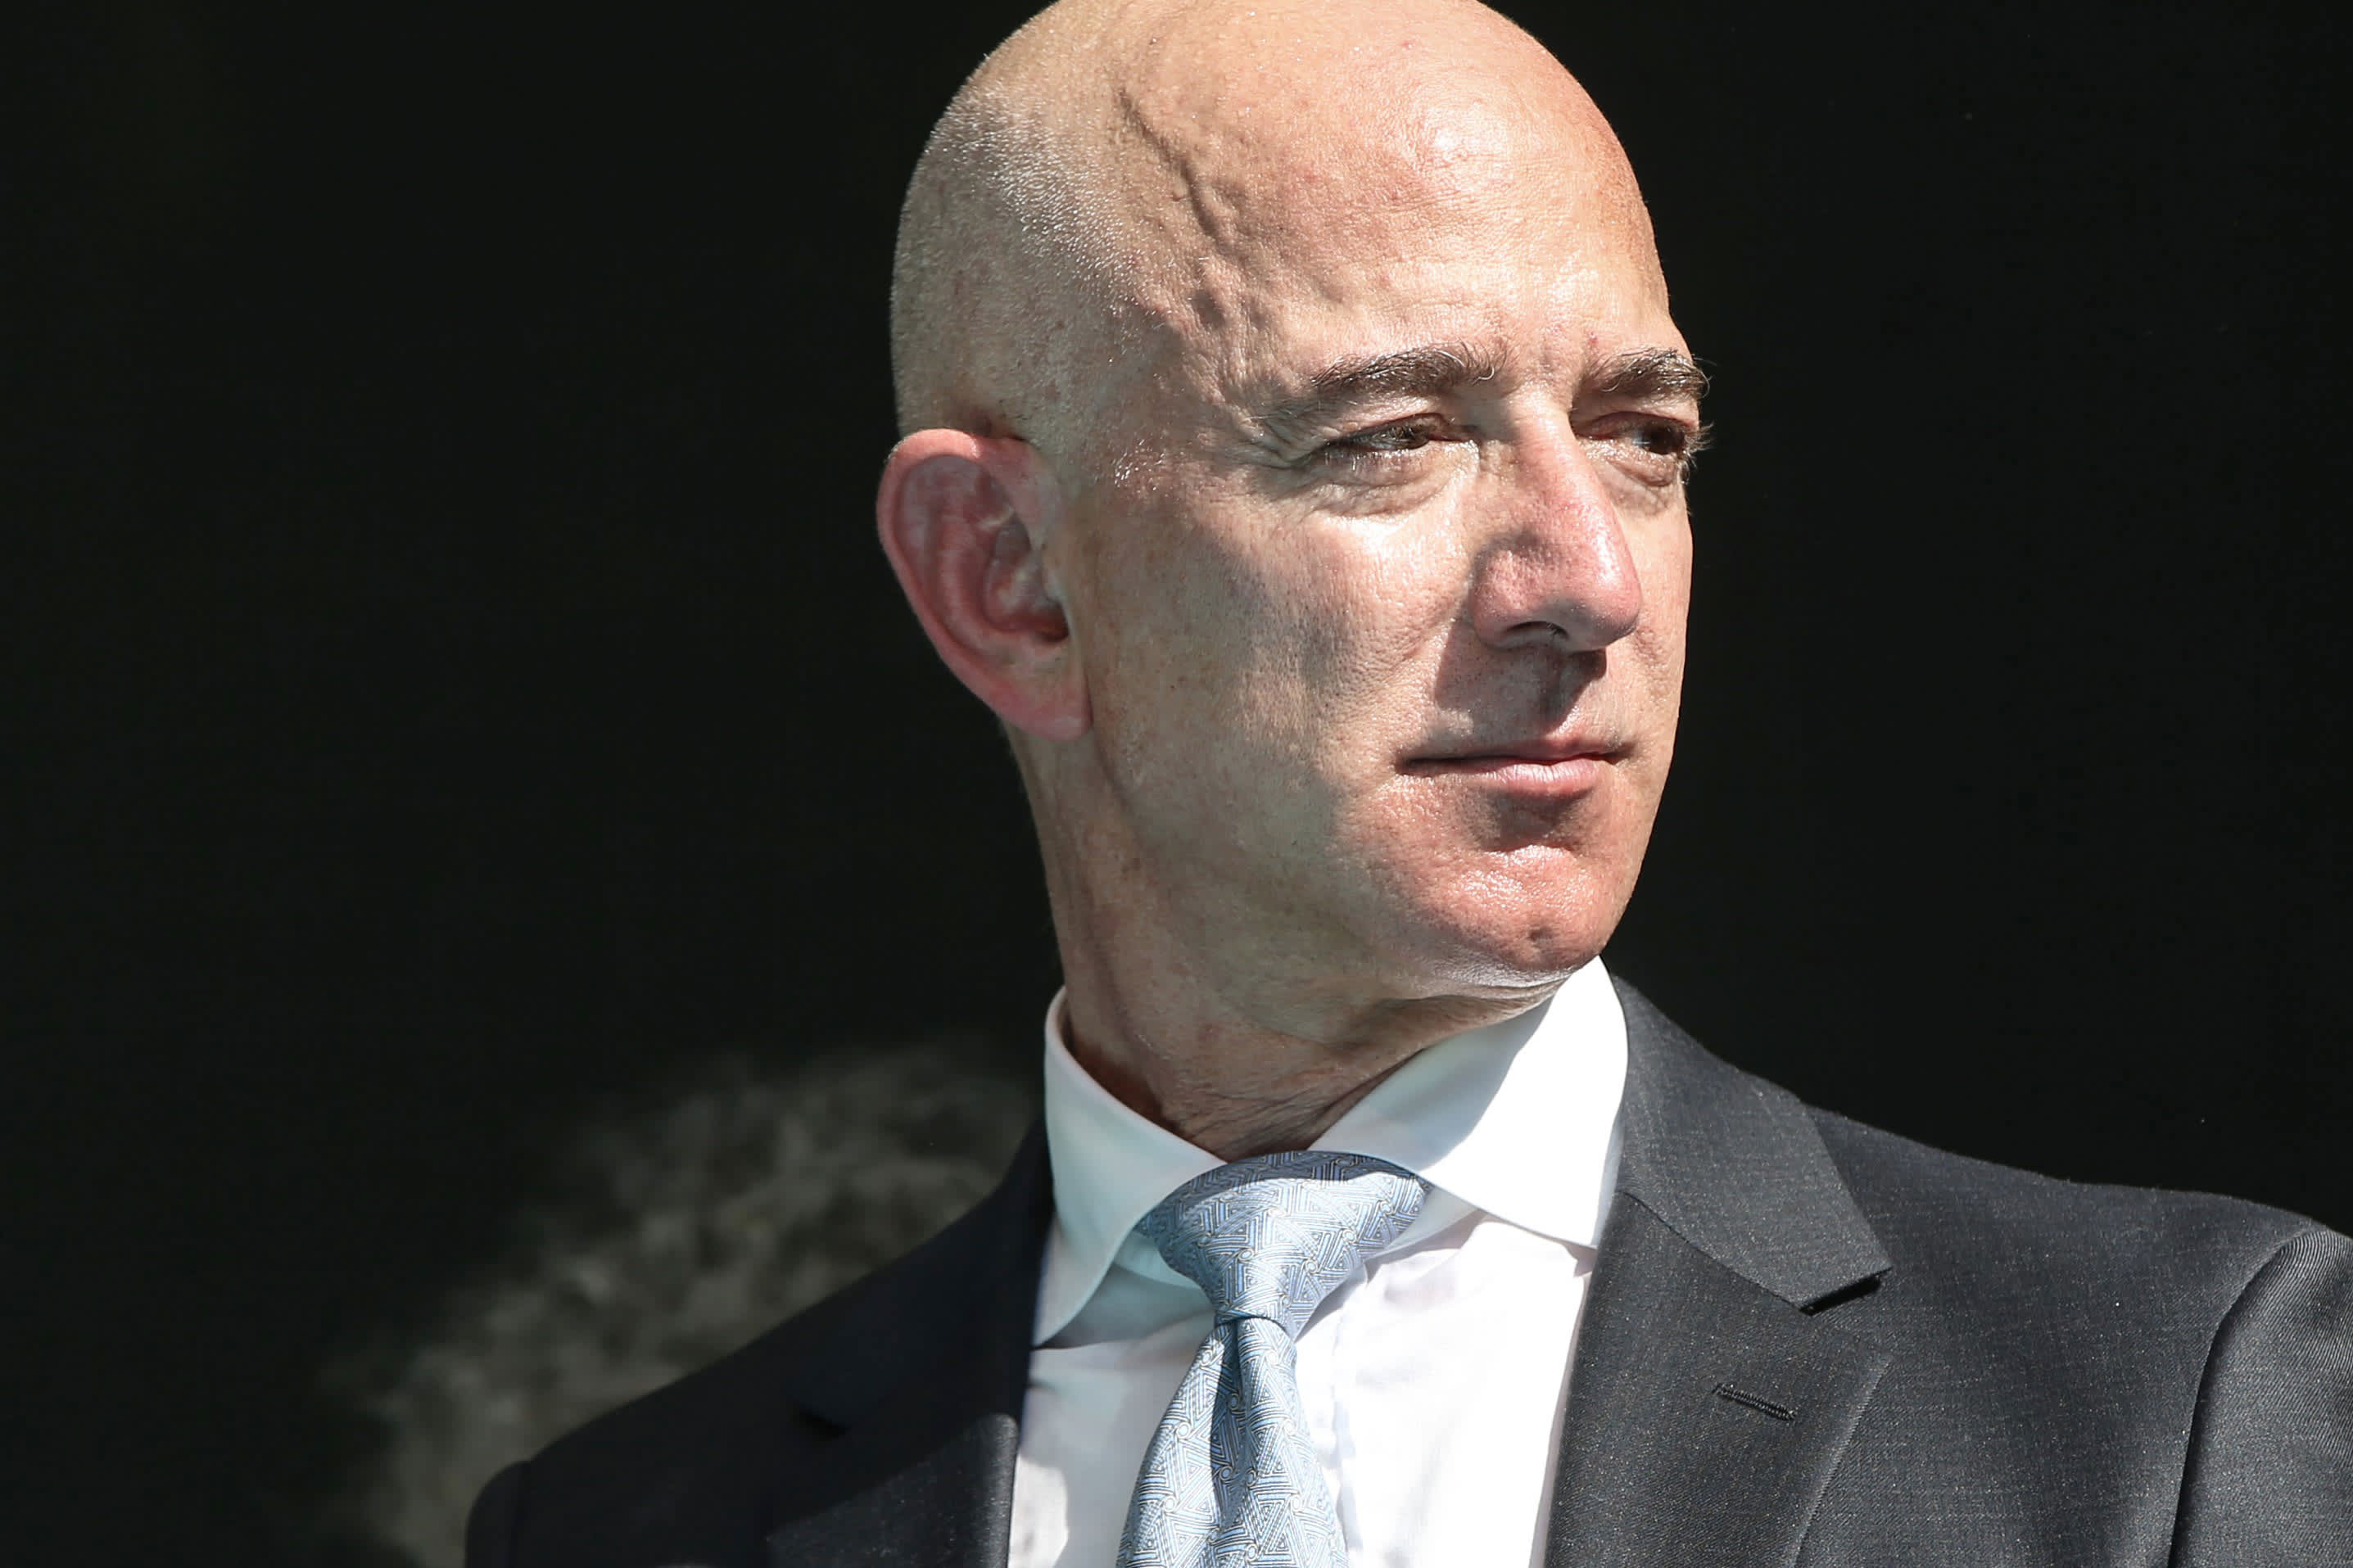 Bezos says 'the country is in trouble' if big tech turns its back on the Pentagon: 'We are the good guys'